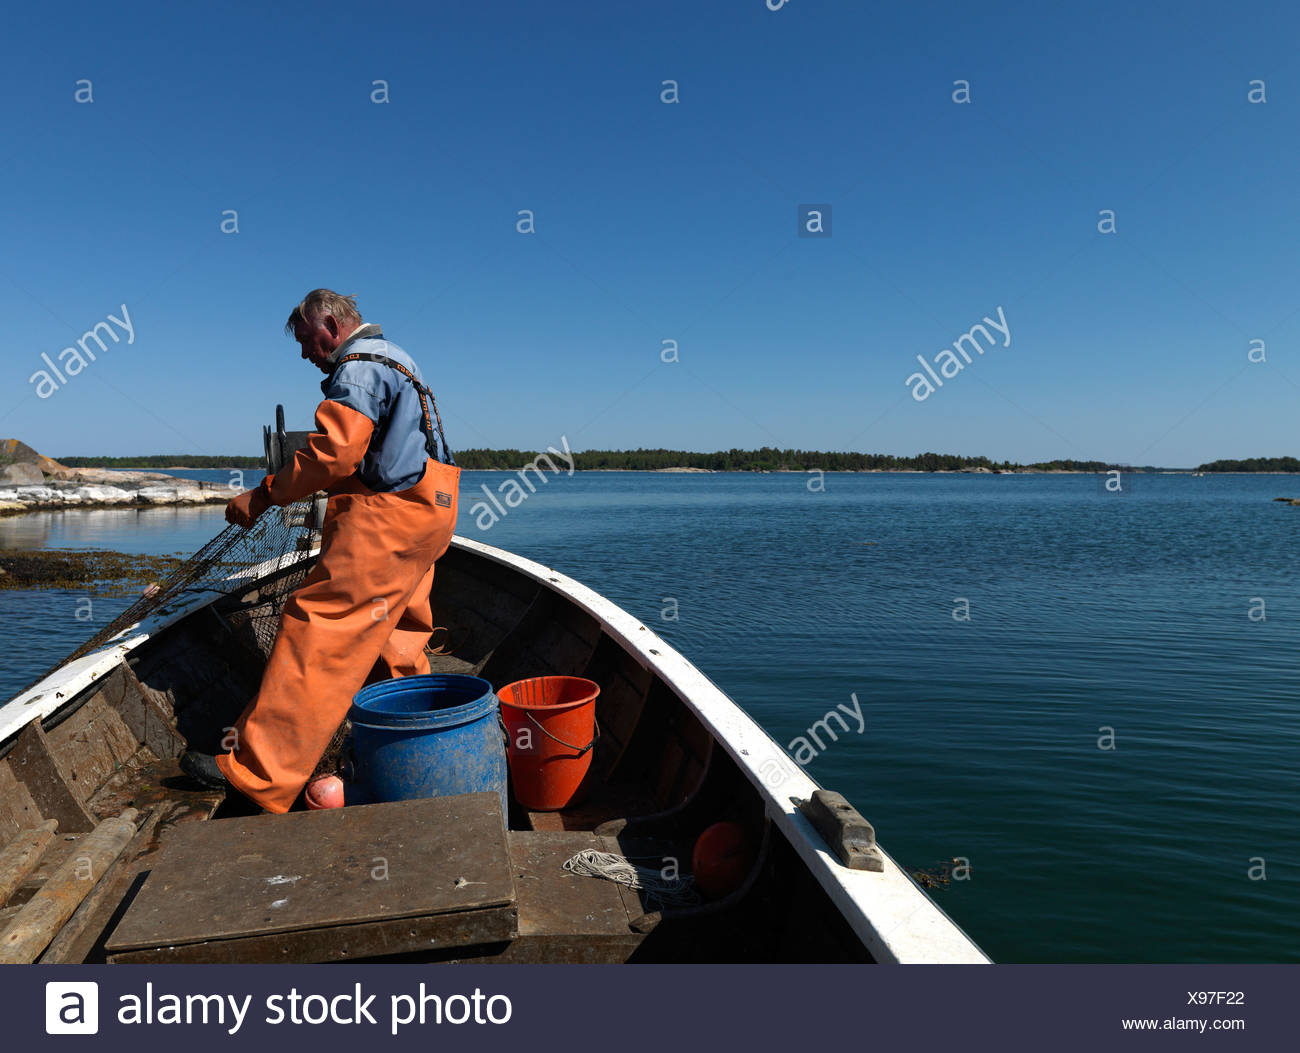 A fishing man in a boat Sweden. Stock Photo